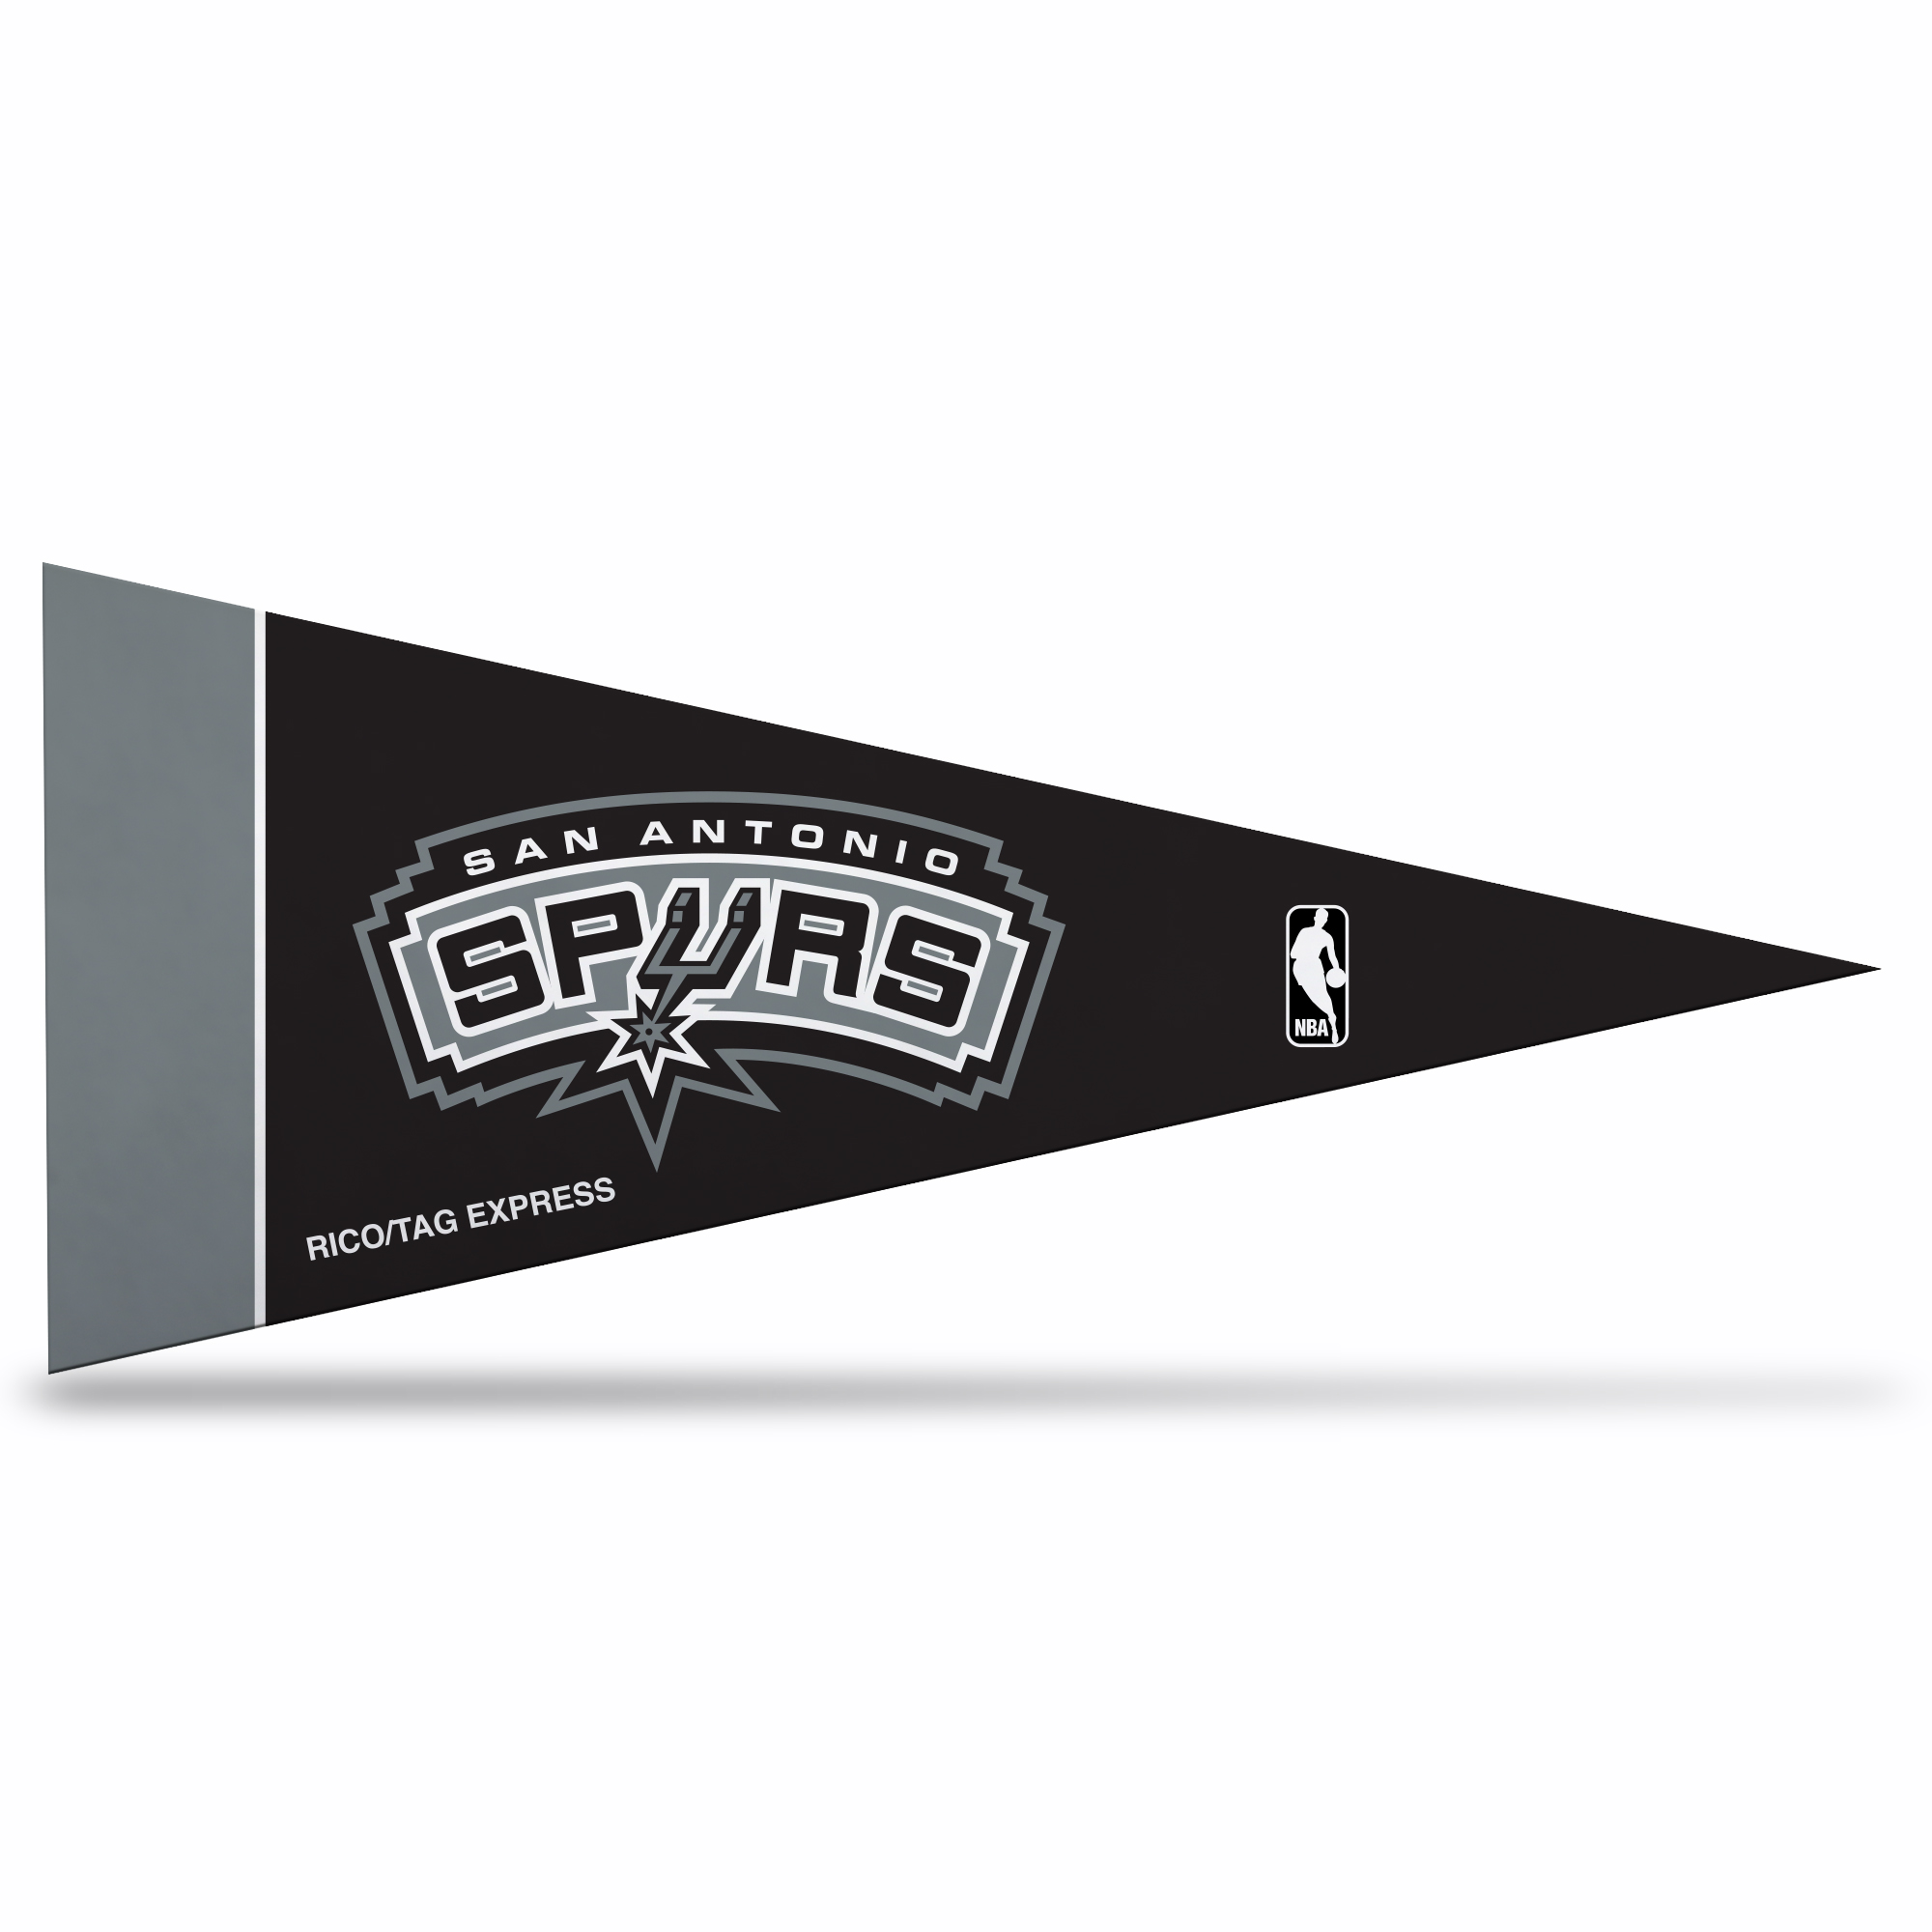 San Antonio Spurs Official NBA 10 inch x 4 inch  8 Piece Mini Pennant Set by Rico Industries